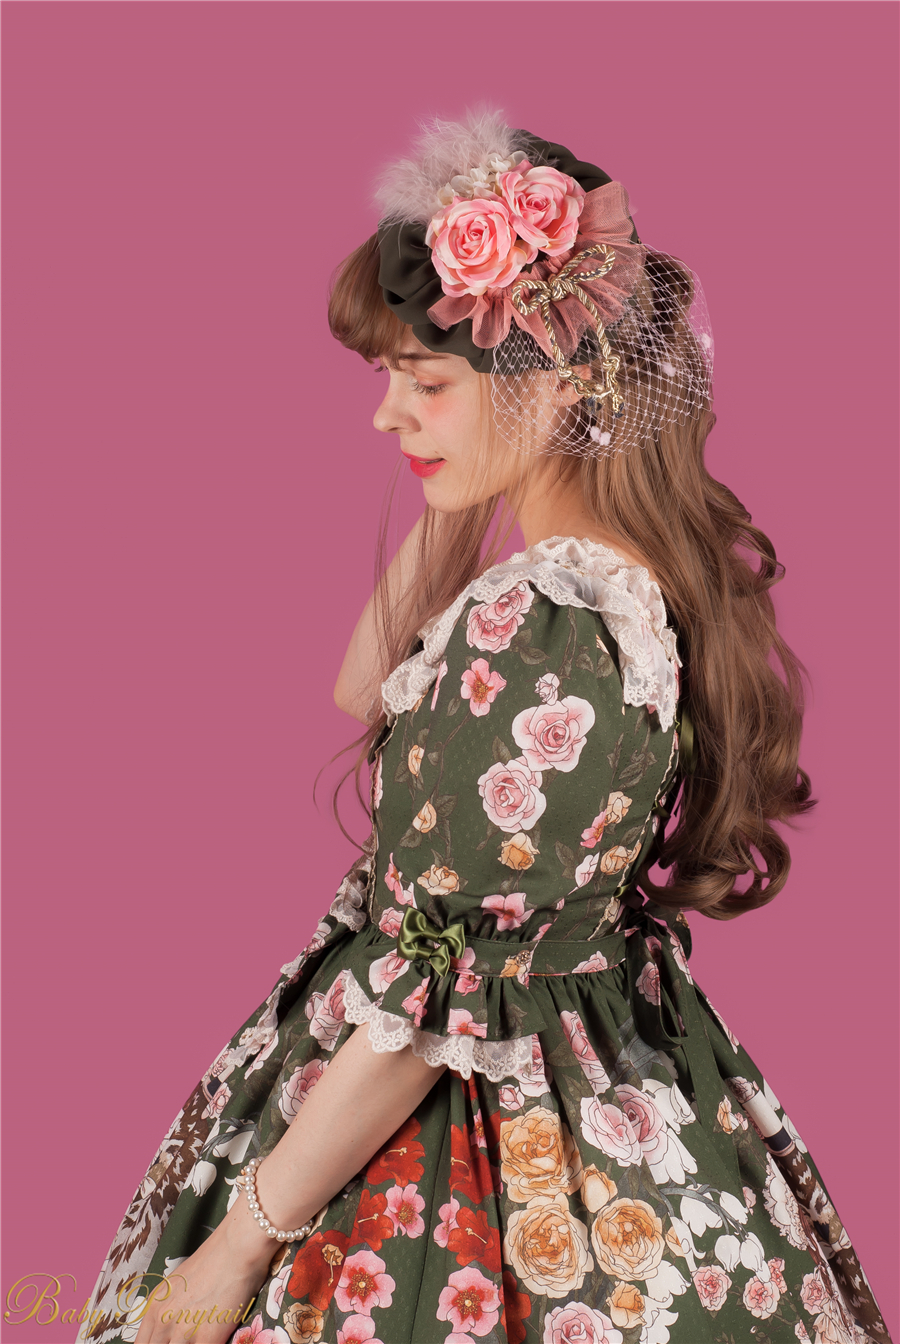 Baby Ponytail_Model Photo_Polly's Garden of Dreams_OP Forest Green_Claudia_04.jpg